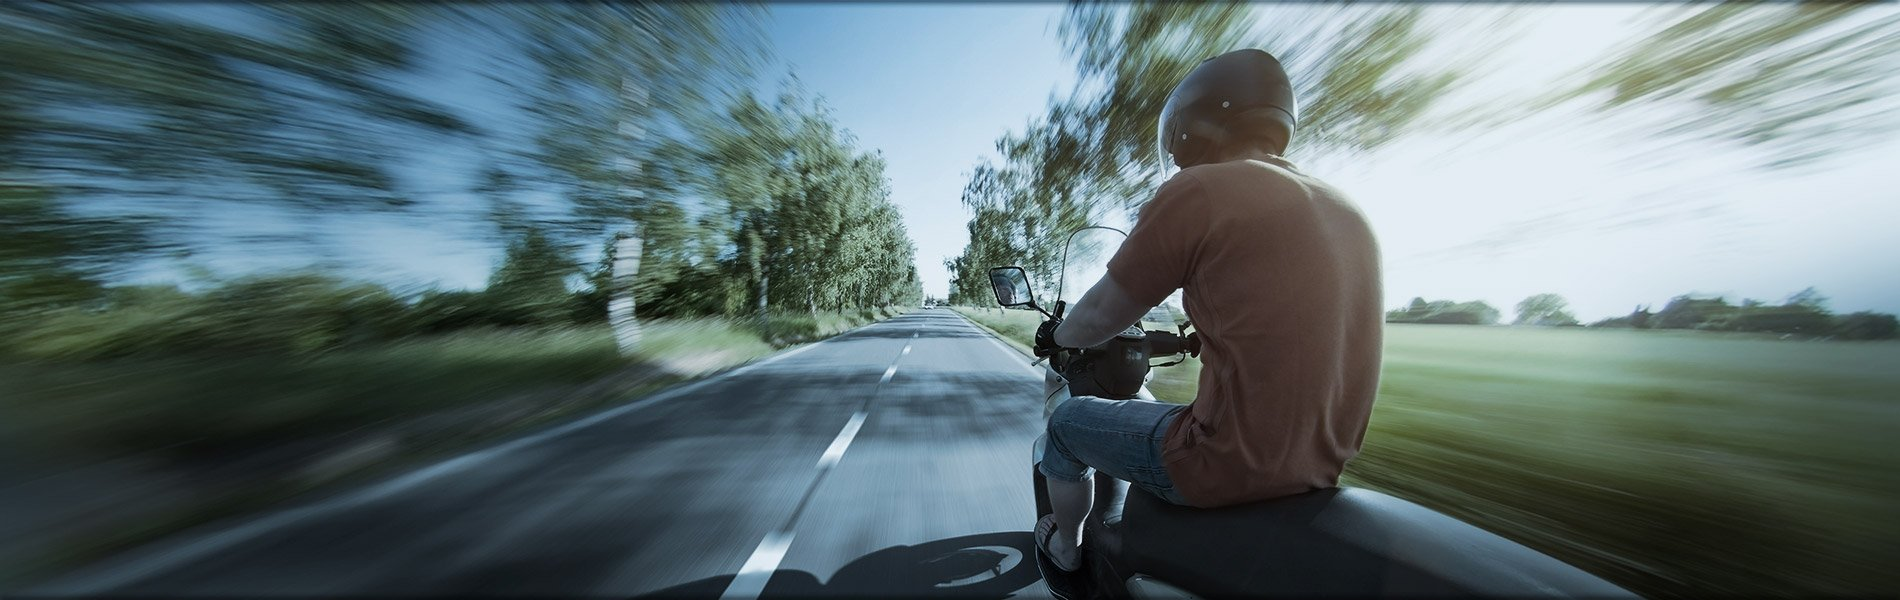 Gainesville Scooter Accidents Attorney